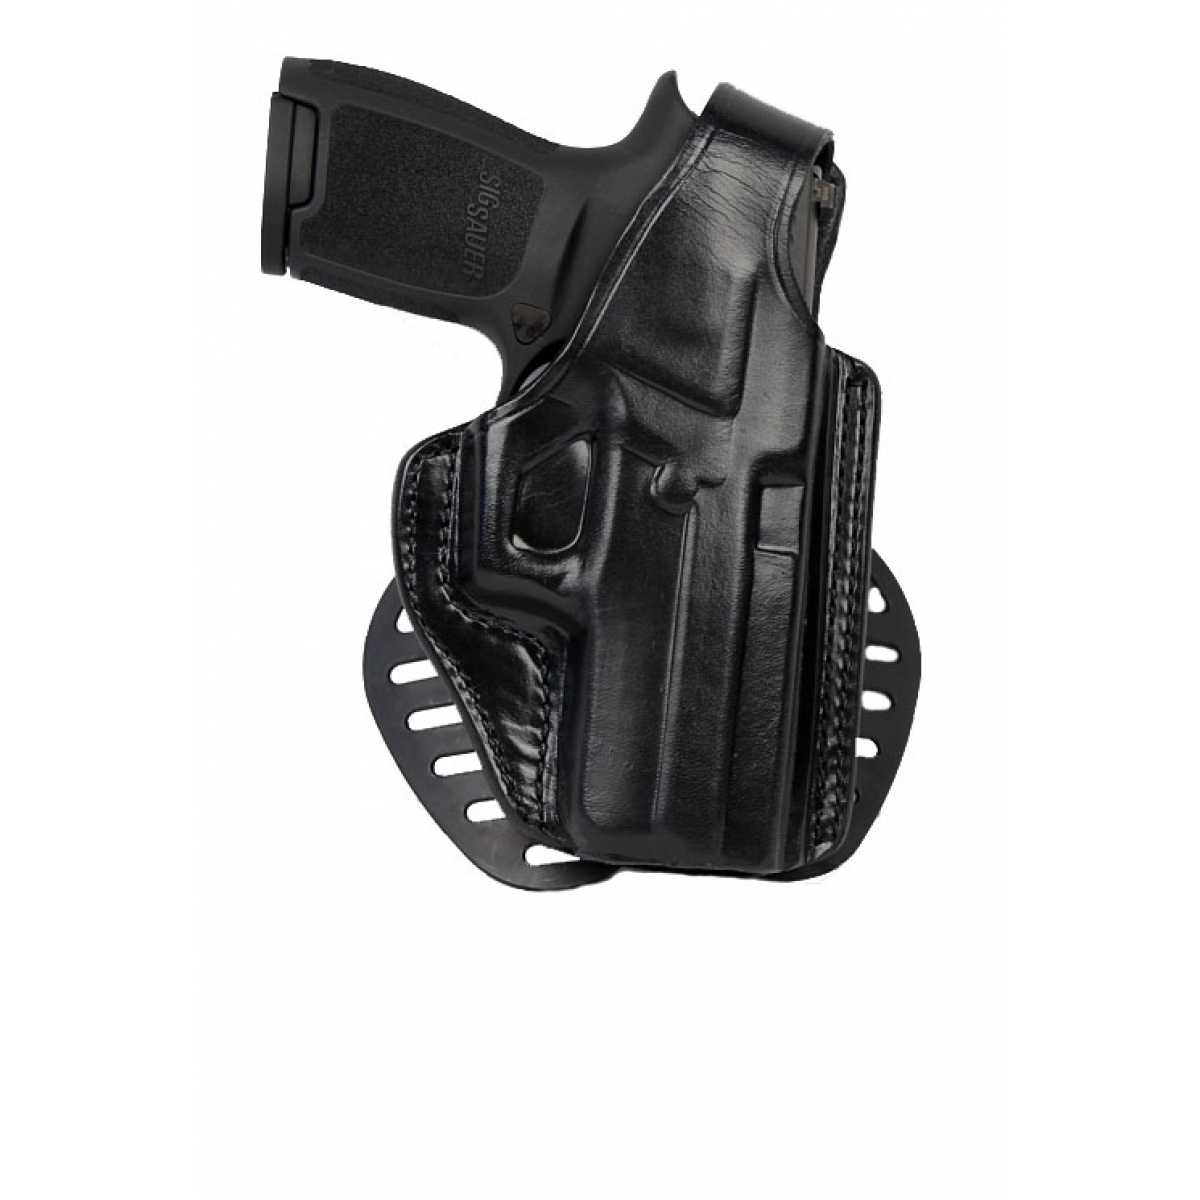 Gould & Goodrich Paddle Holster, Right Hand, BLACK - SIG 220,226,226R